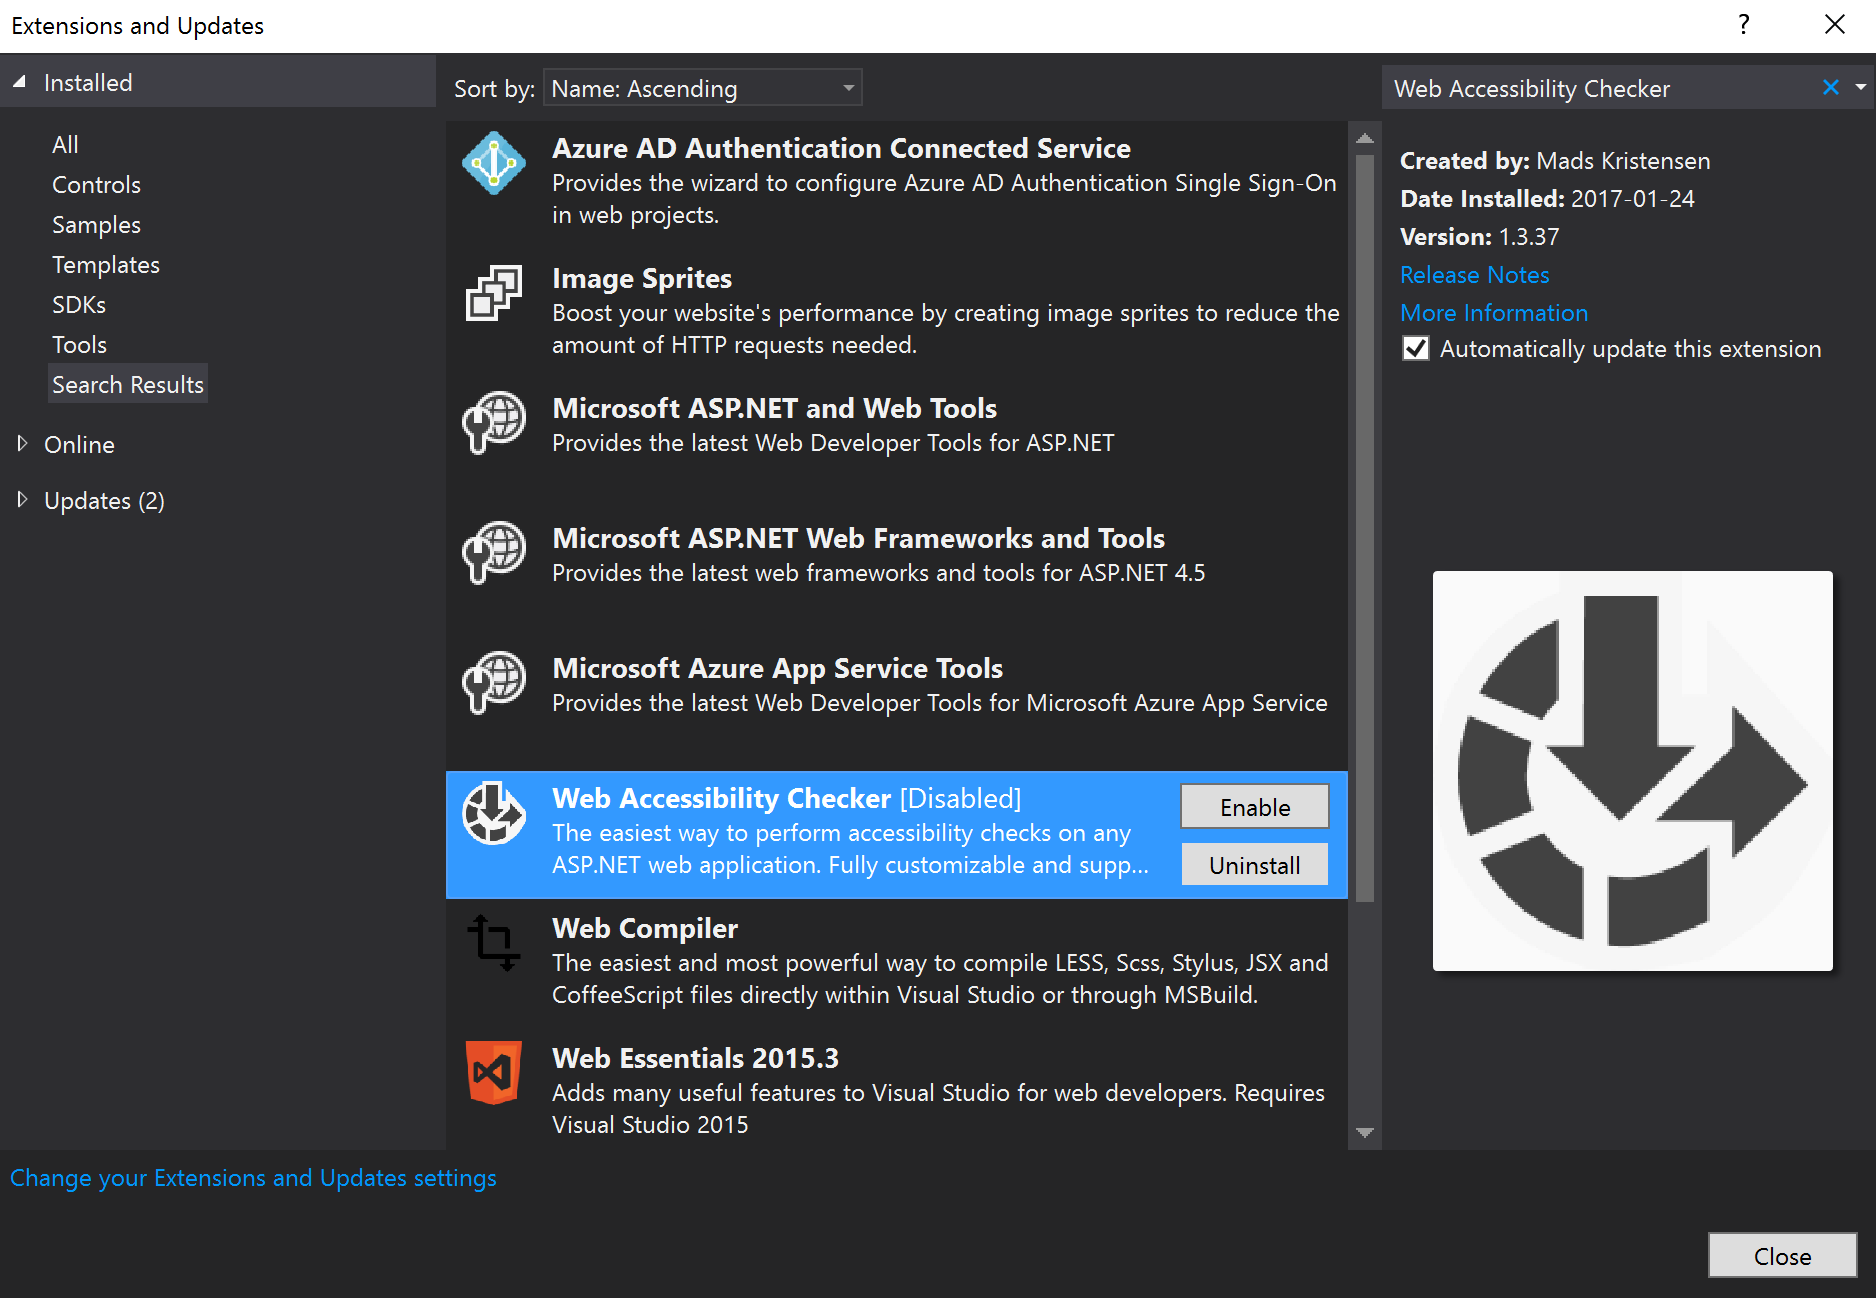 The Extensions and Updates window in Visual Studio 2015.